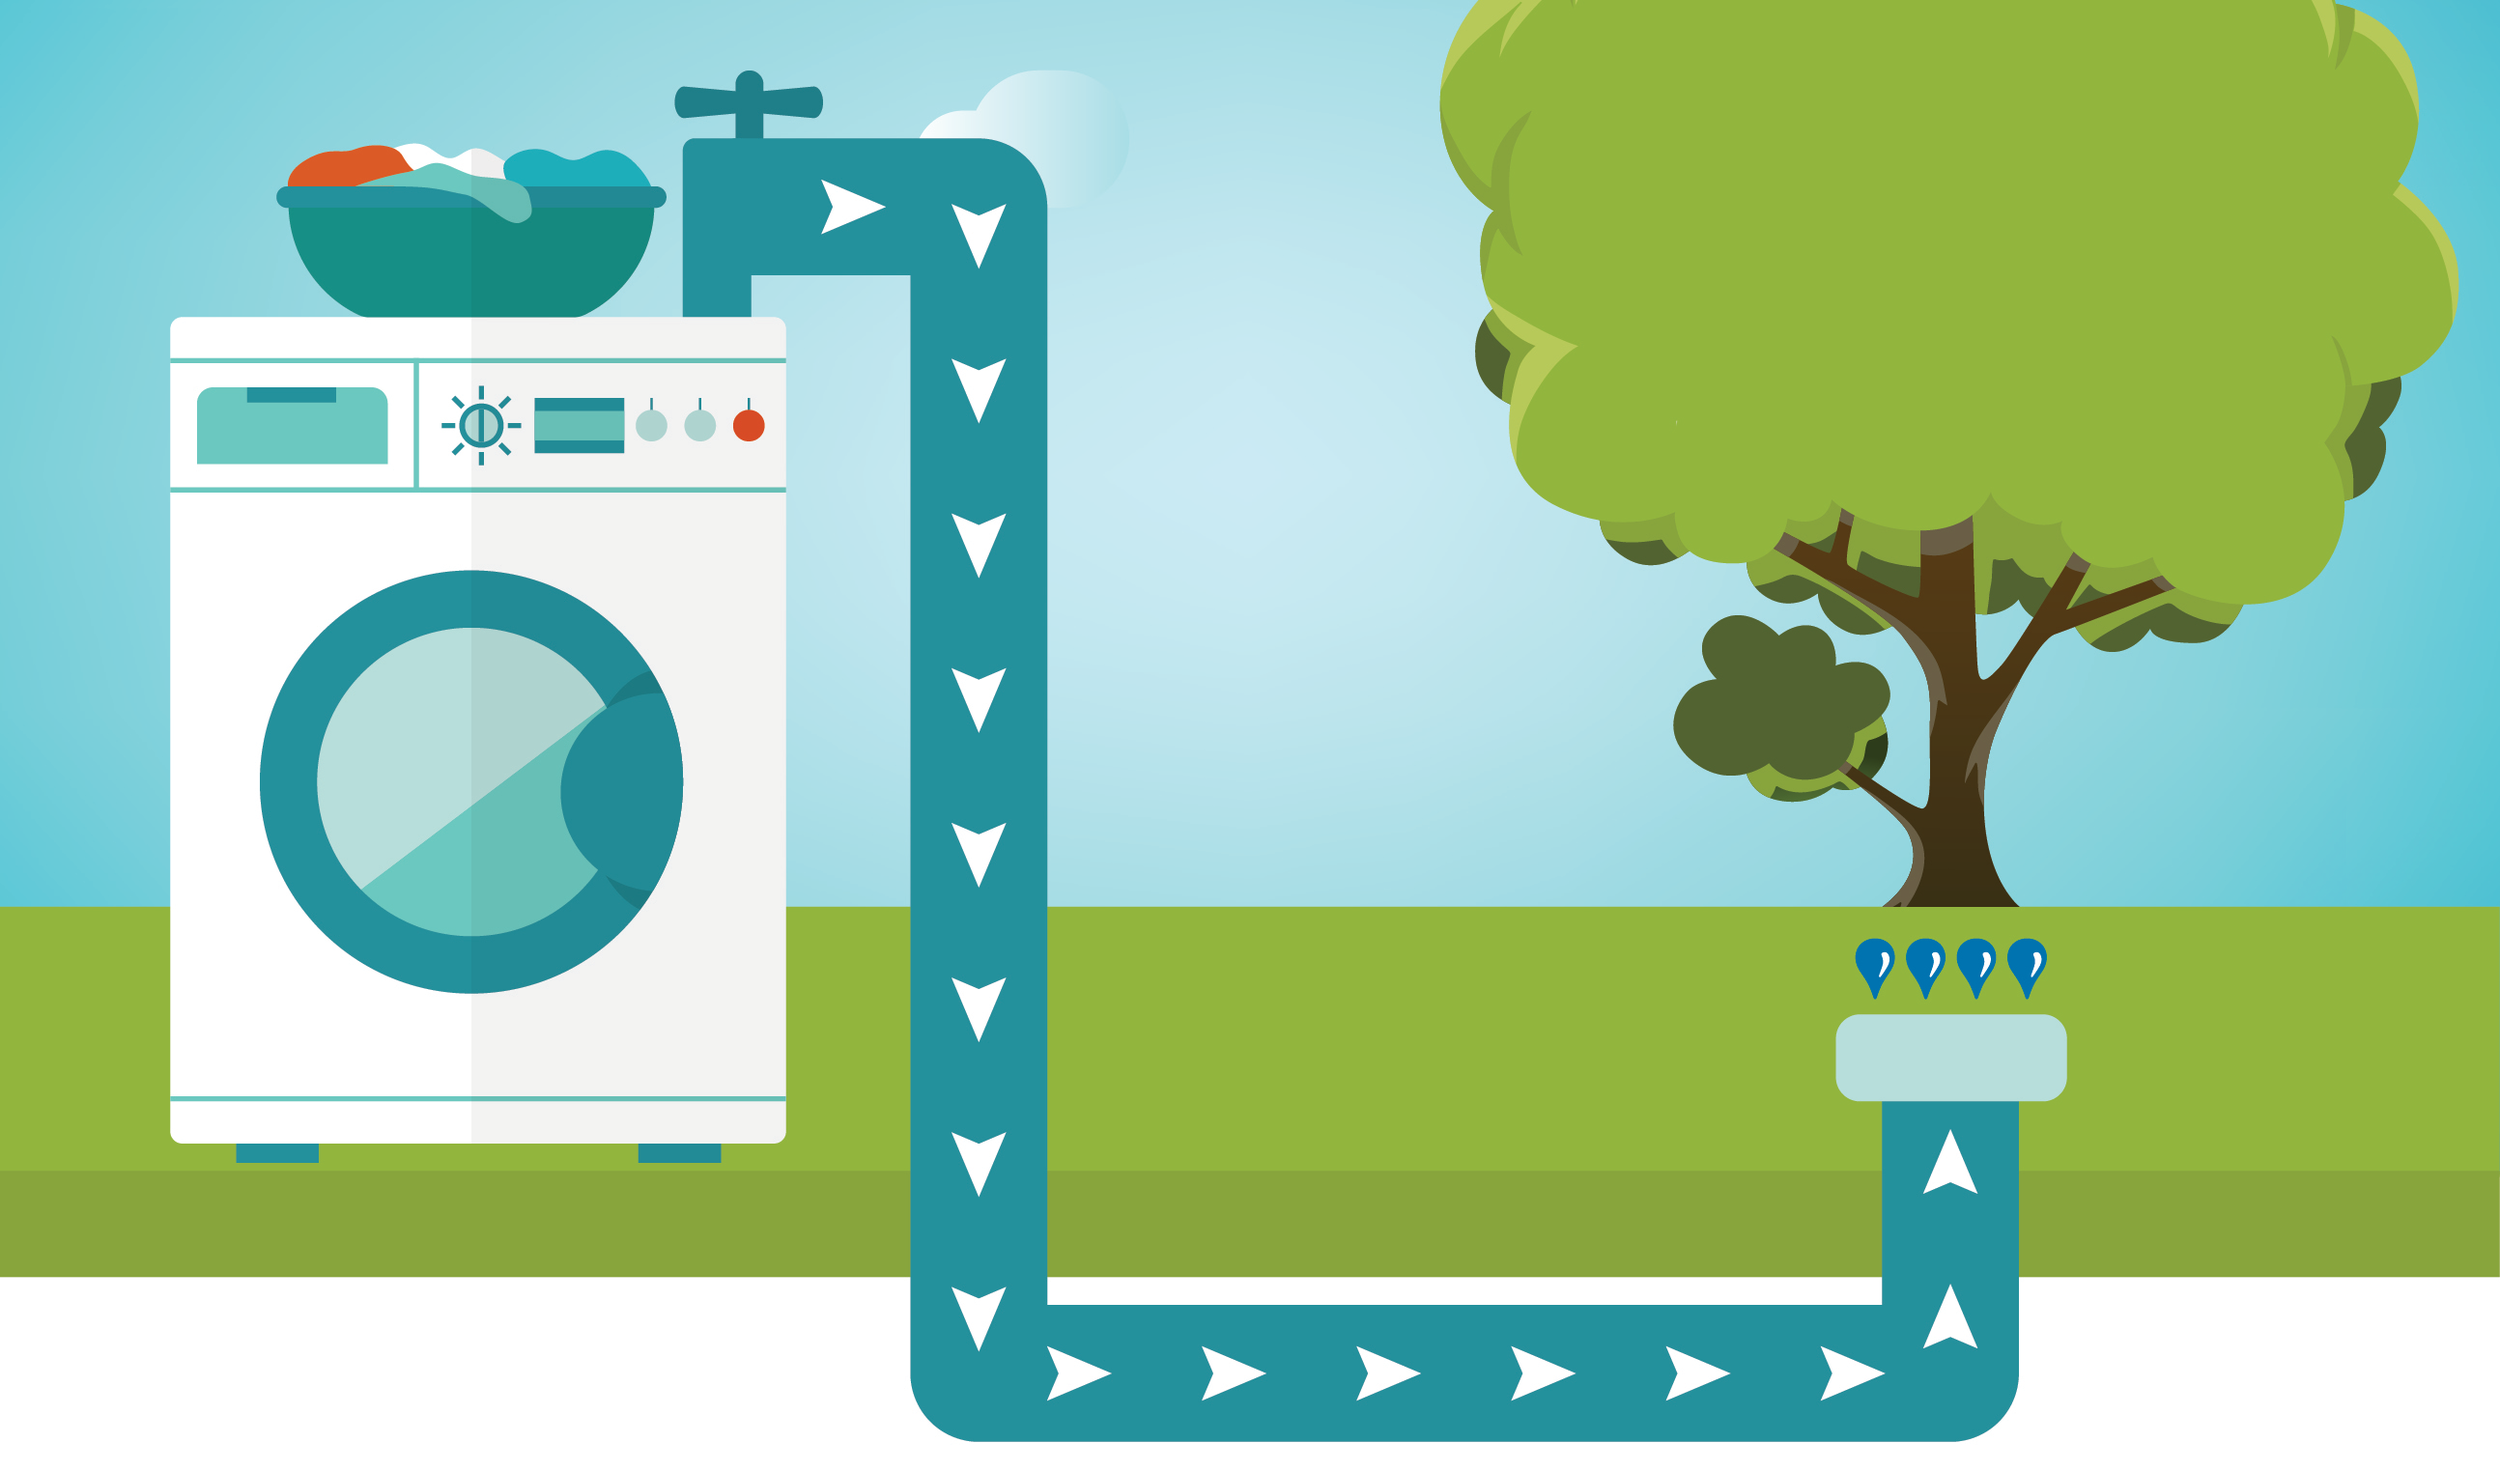 With natural washing machine products this scheme is easily doable - source coastal-watershed.org